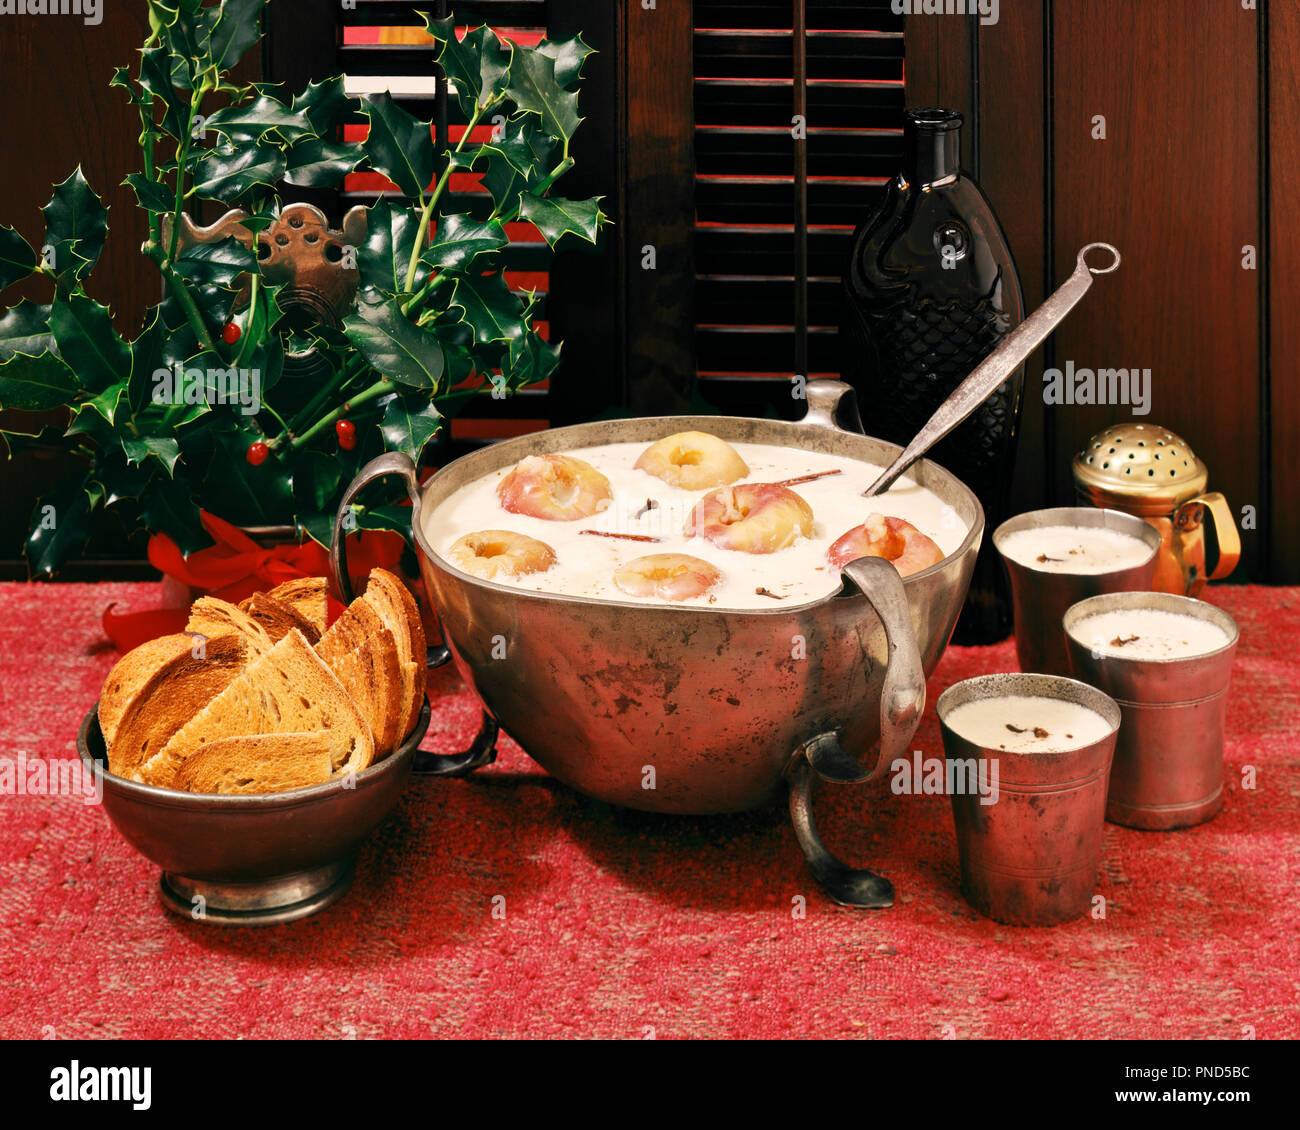 1950s 1960s AMERICAN VERSION OF TRADITIONAL ENGLISH CHRISTMAS TIDE BOWL OF WASSAIL PUNCH WITH APPLES AND SLICES OF TOAST AS SOPS - kx13215 FRT001 HARS STYLISH FARE CHRISTMASTIDE RITUAL TOGETHERNESS WASSAIL WASSAILING OLD FASHIONED VERSION Stock Photo